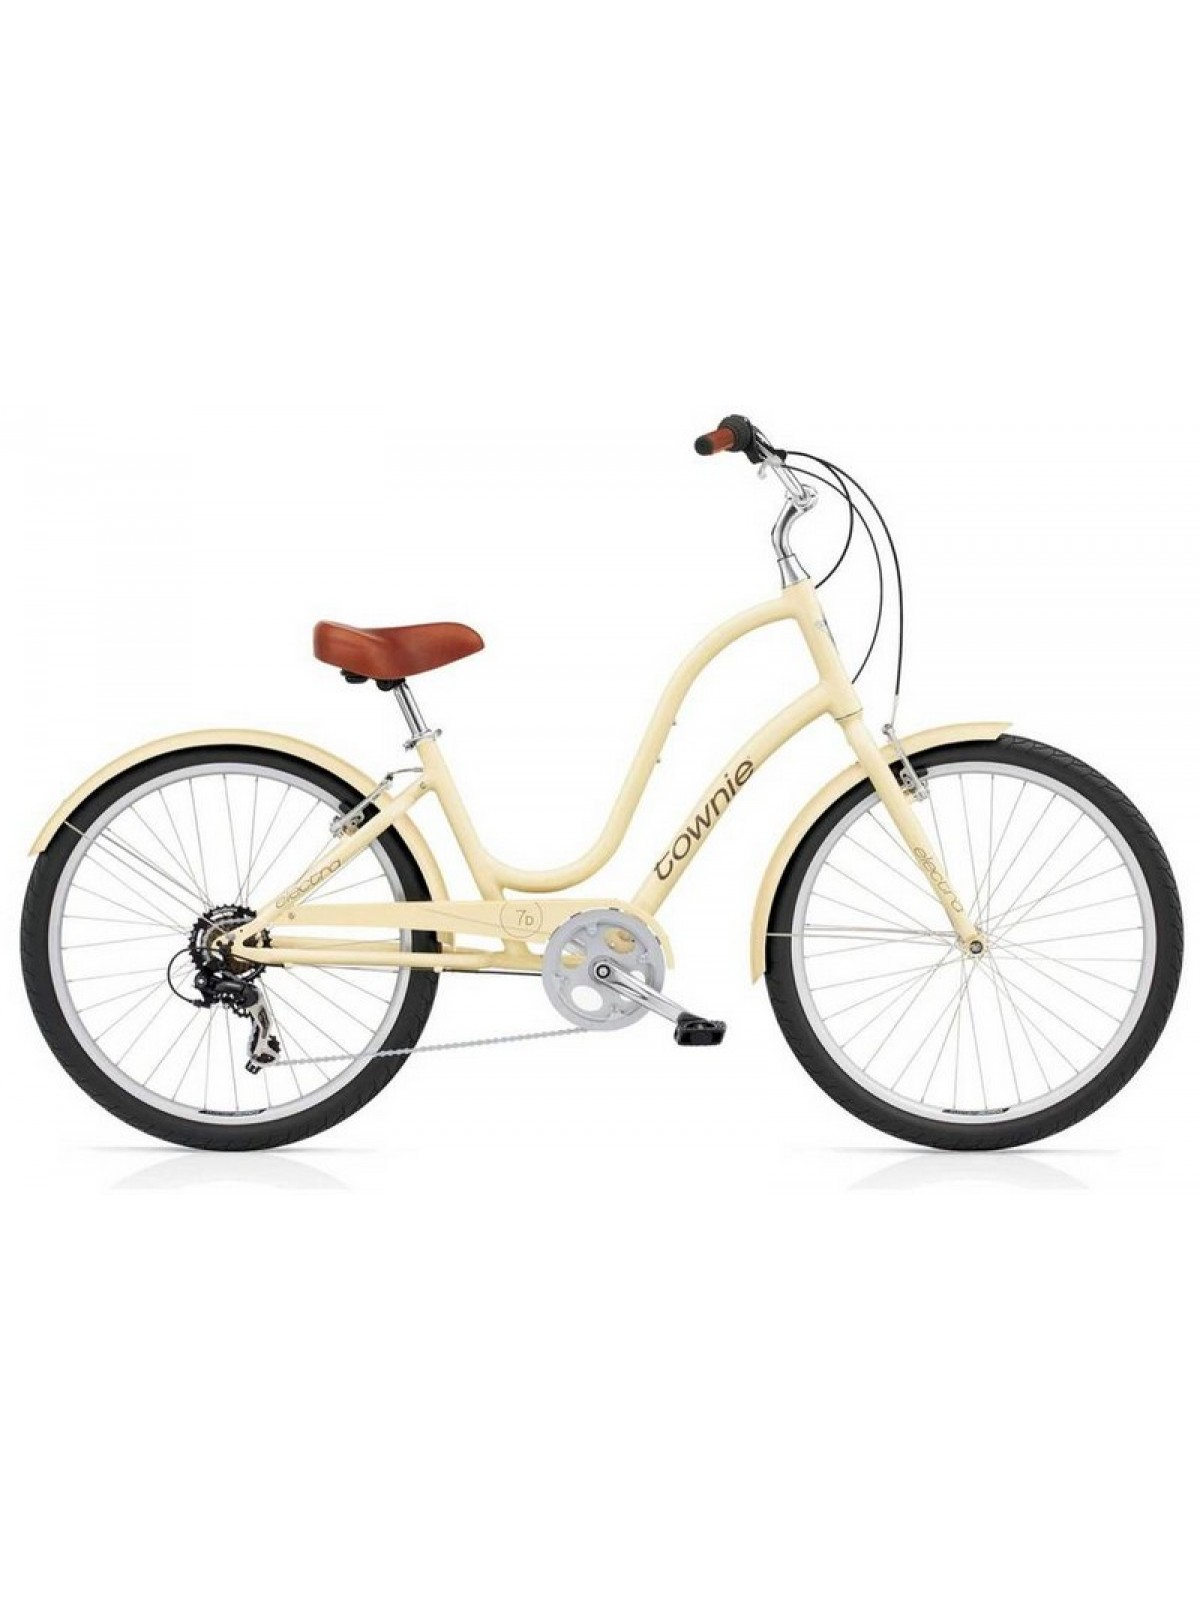 Electra townie original 7 vitesses